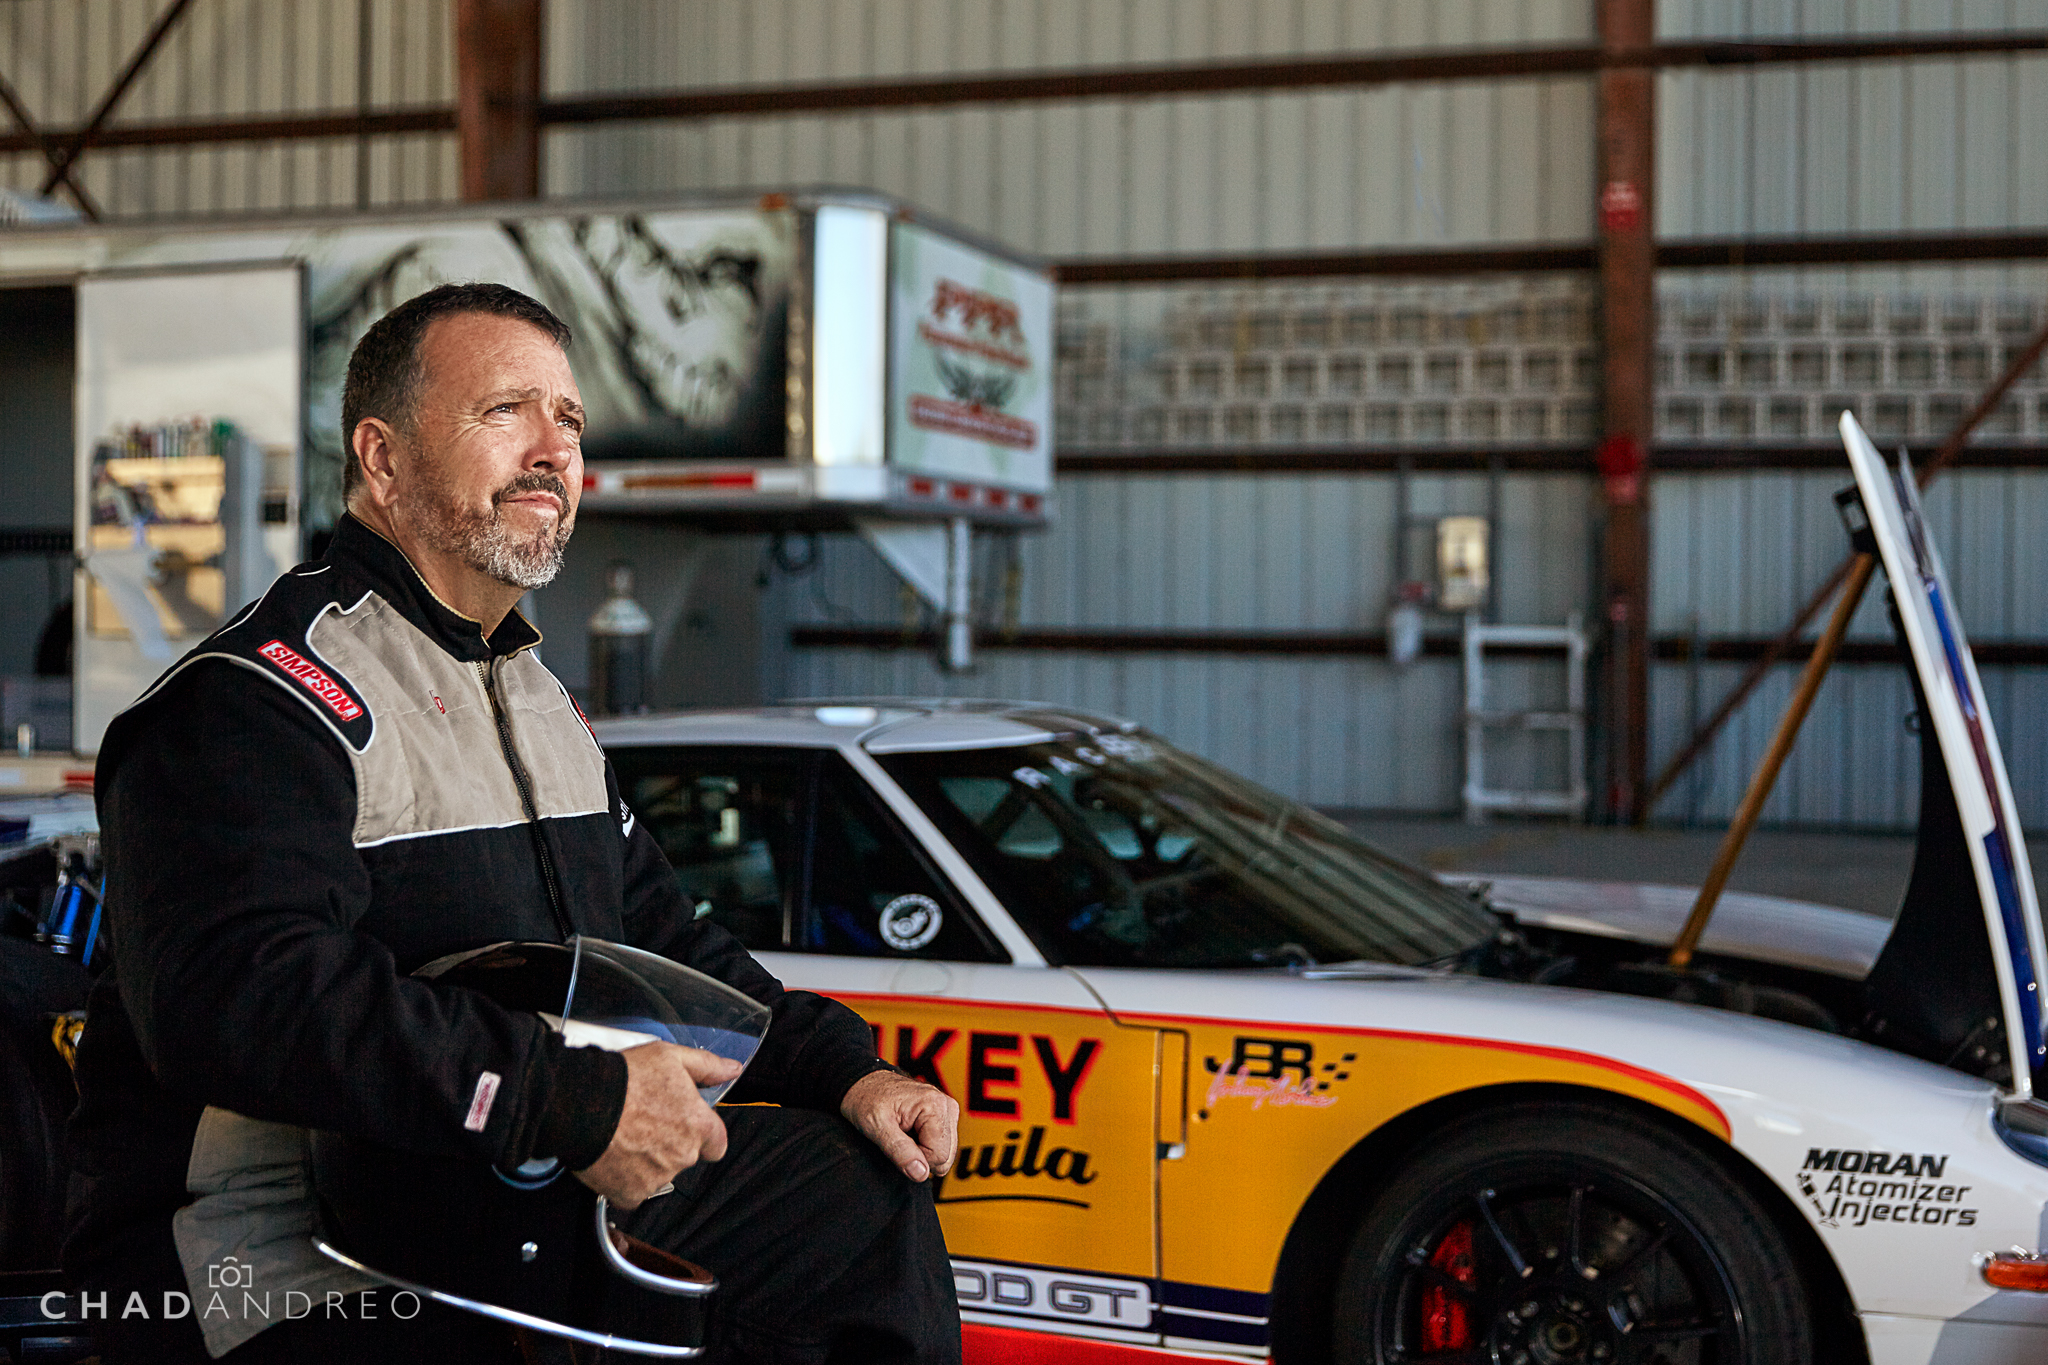 Chad-Andreo-BaddGT-Commercial-Photographer-6446R2-2.jpg